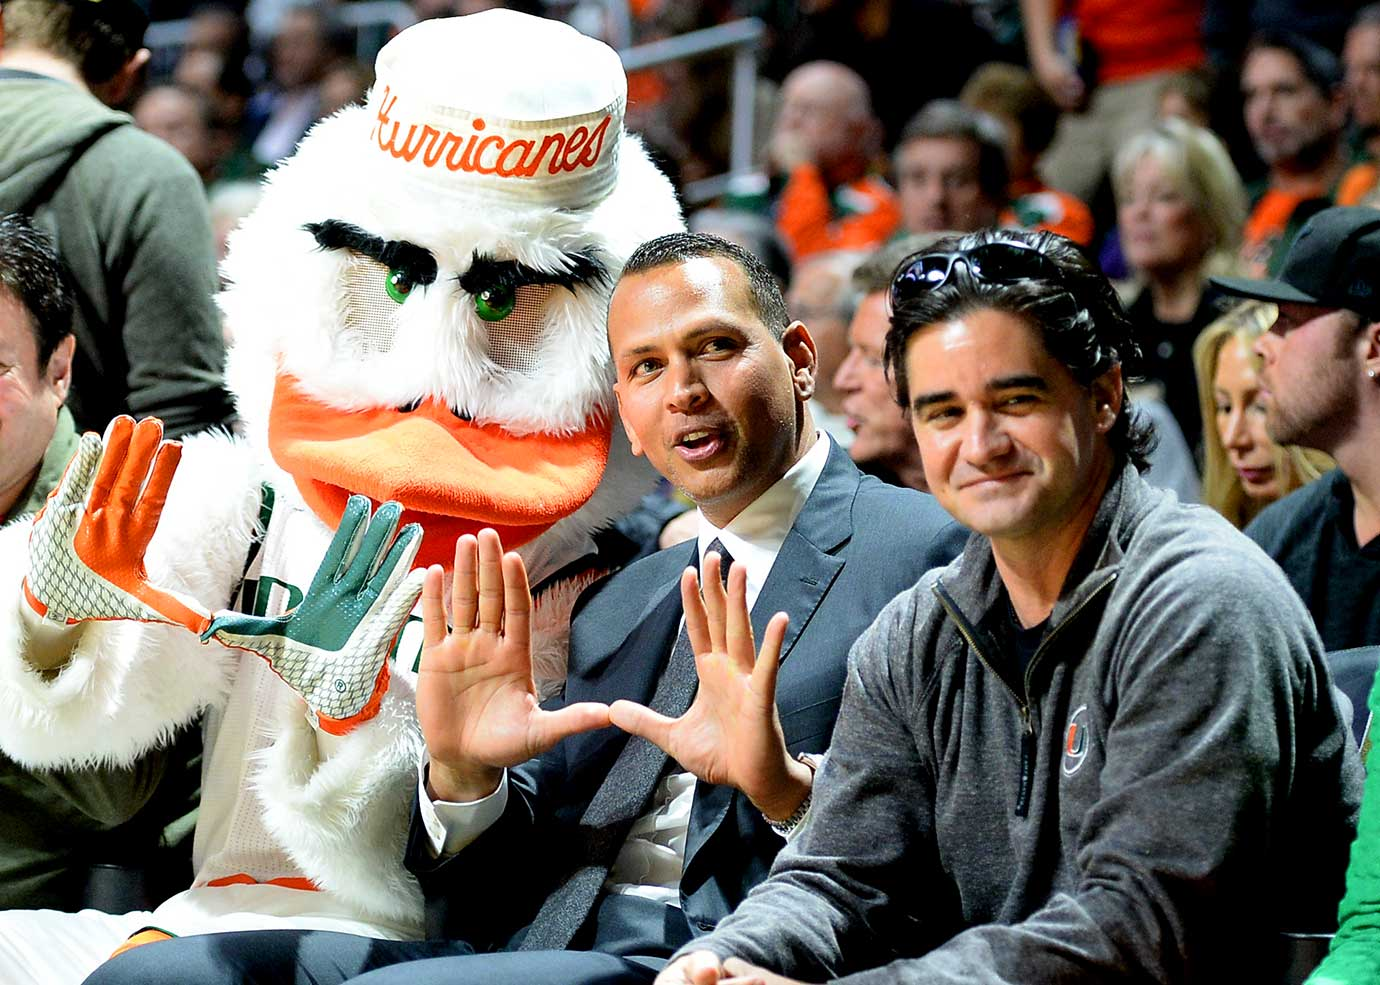 Here are some of the images that caught our eye on the sports night of Jan. 25, beginning with Alex Rodriguez sitting courtside at the Miami vs. Duke game and flashing the U sign with the Hurricanes mascot. Miami defeated Duke 80 to 69.